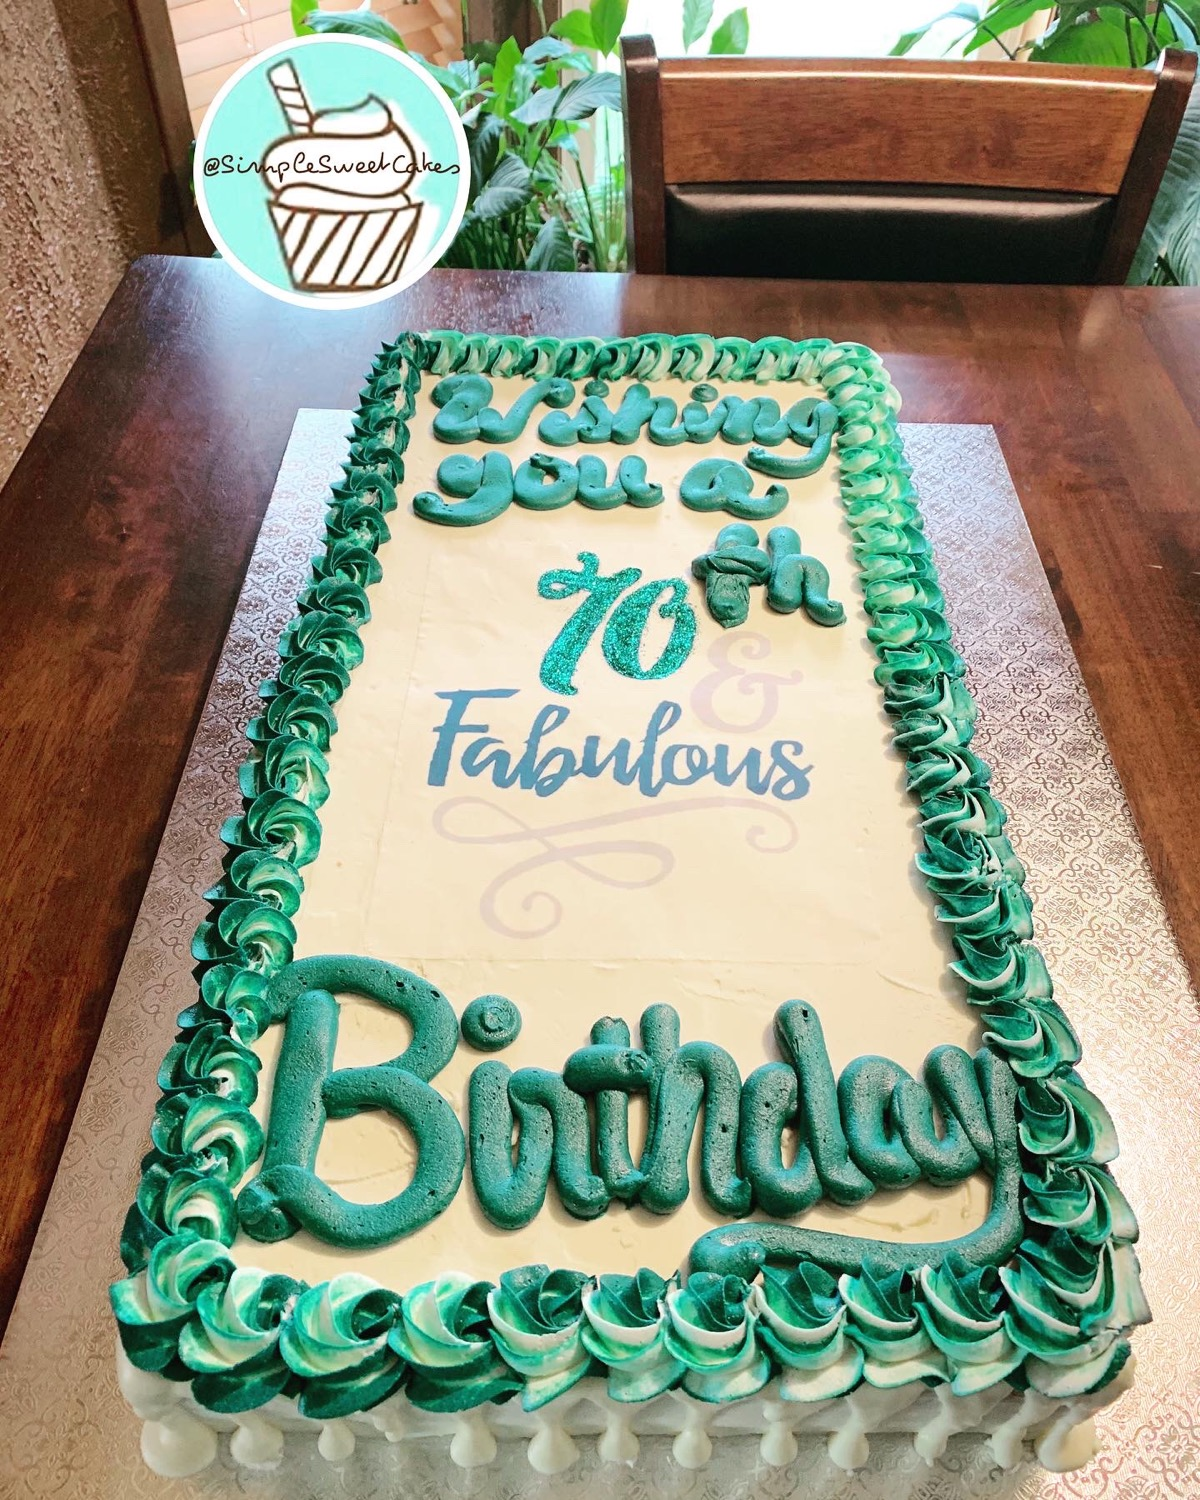 Florence You're 70 & Fabulous! Lemon Cak